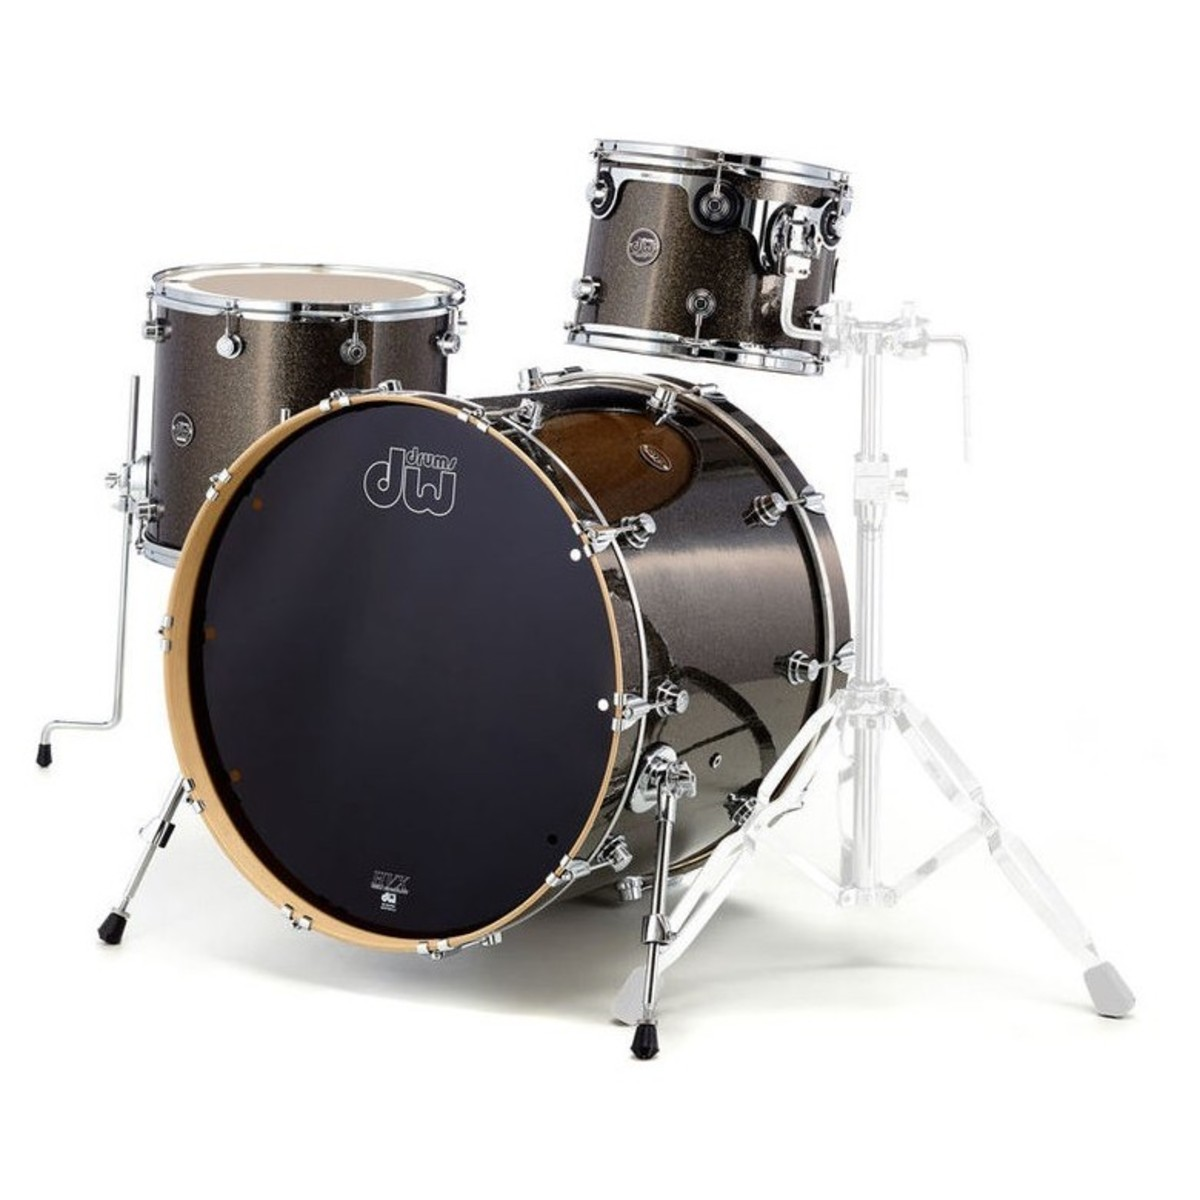 dw drums performance series 22 3 piece shell pack pewter sparkle at. Black Bedroom Furniture Sets. Home Design Ideas